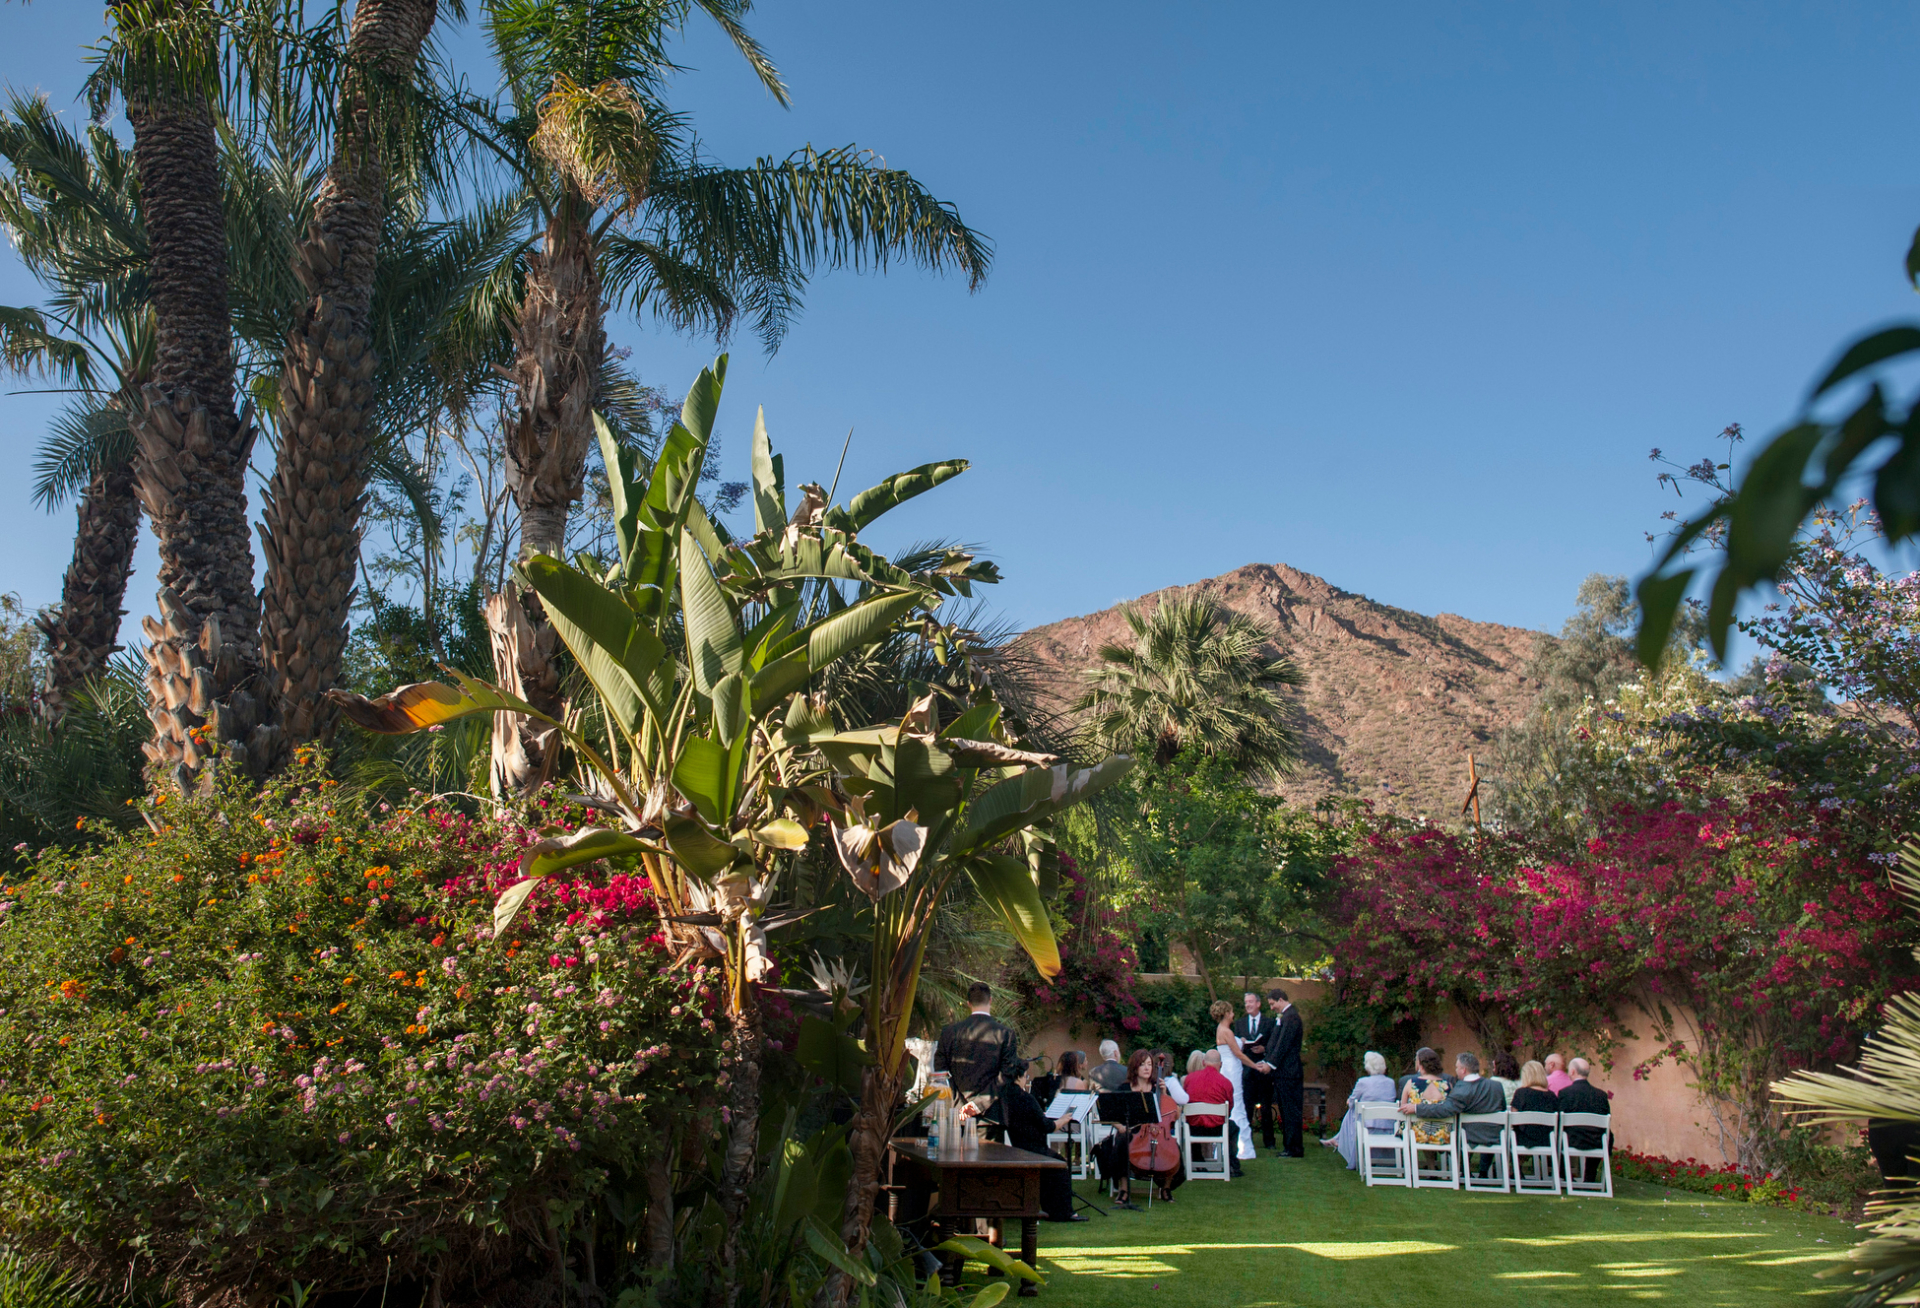 Royal Palms Resort and Spa- Phoenix, Arizona Elopement Ceremony Picture | the intimacy and beauty of this ceremony are evident